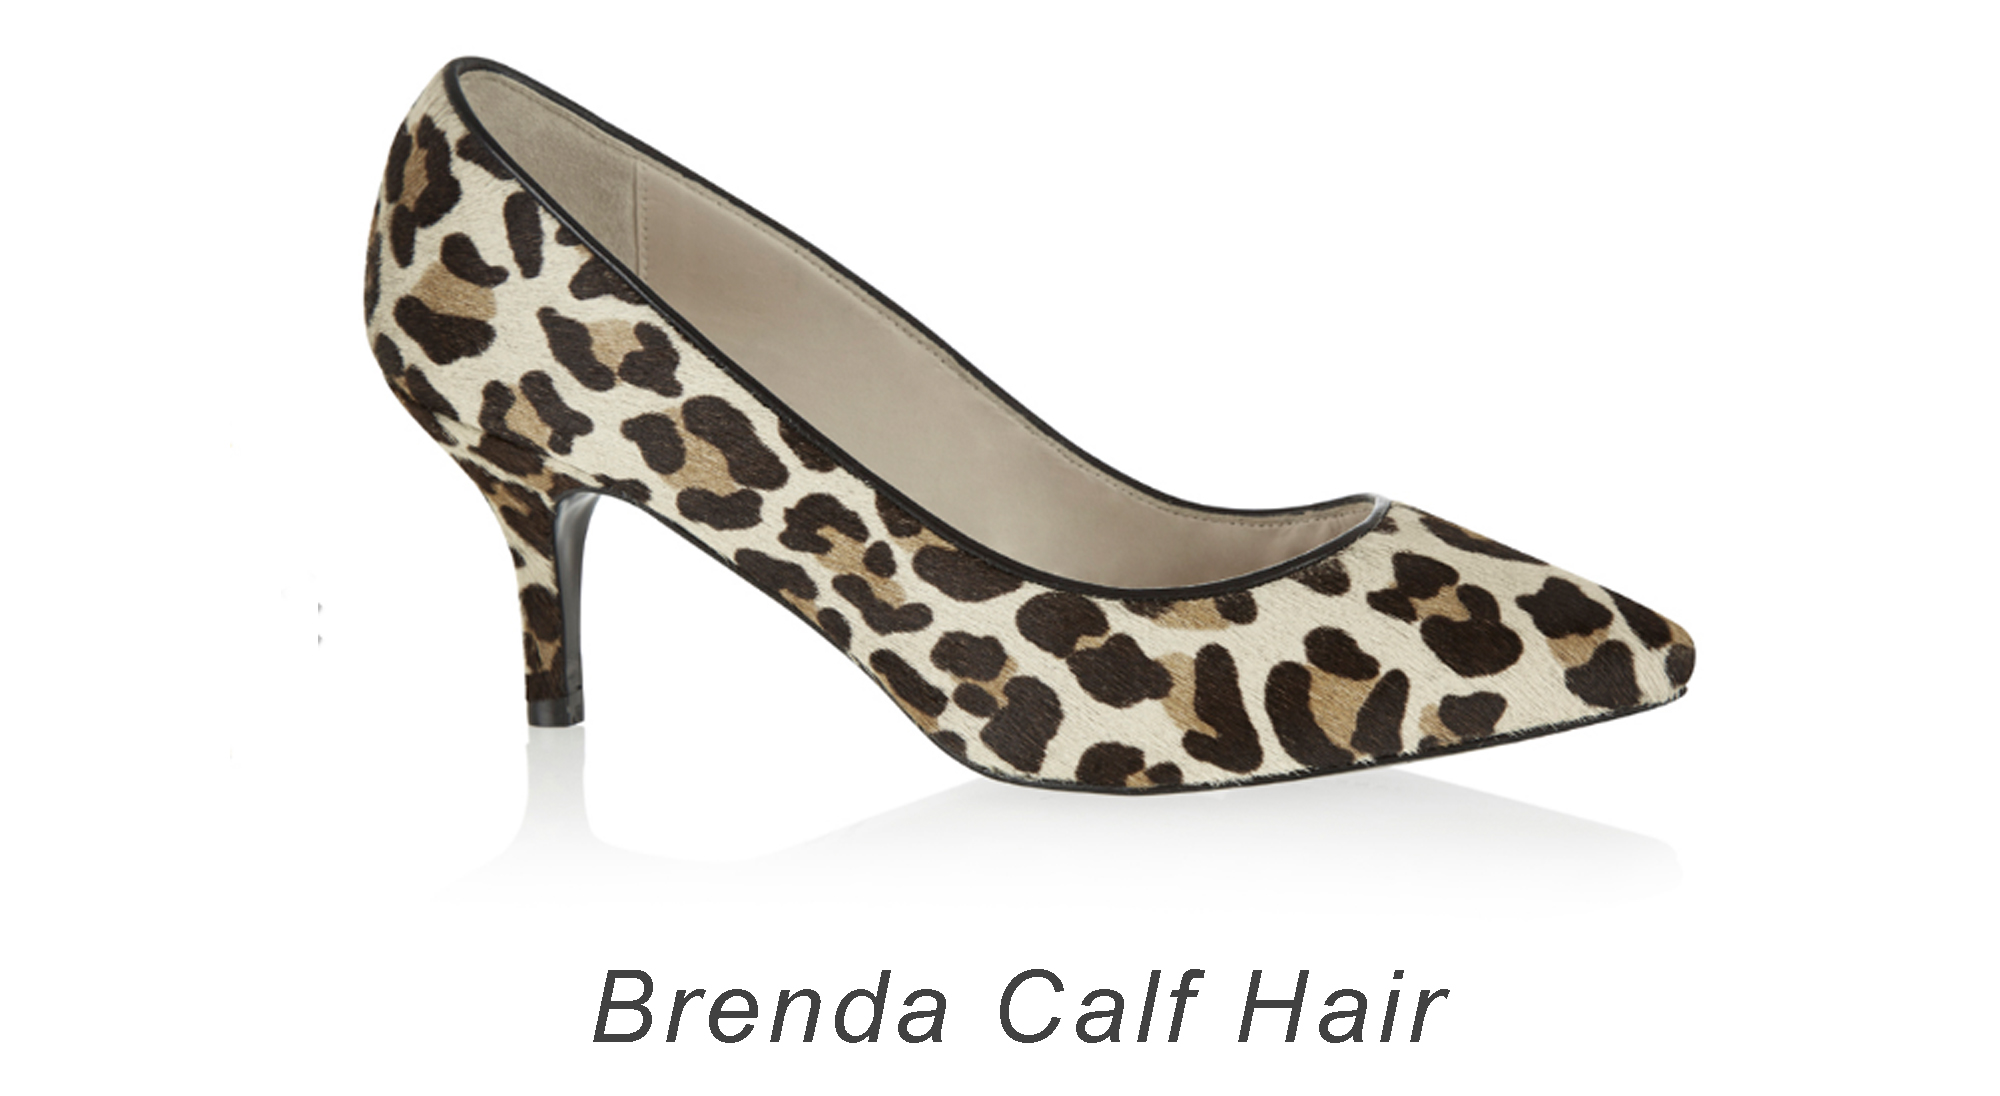 French Sole Brenda Calf Hair Heels